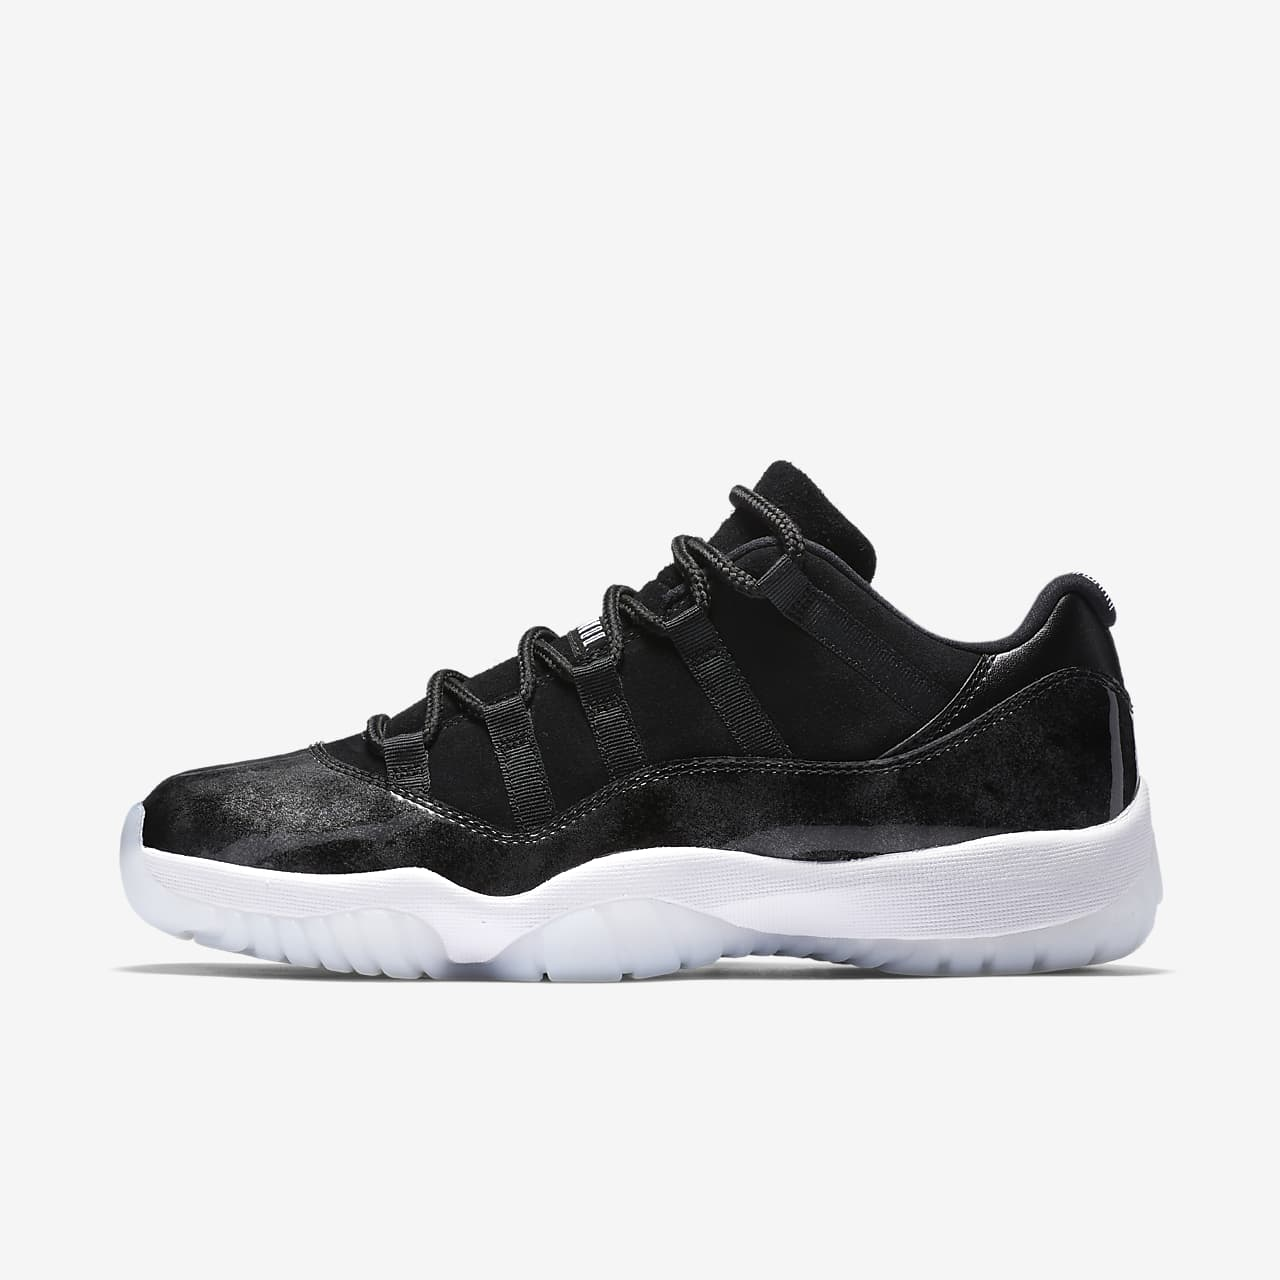 air jordan 11 low noir